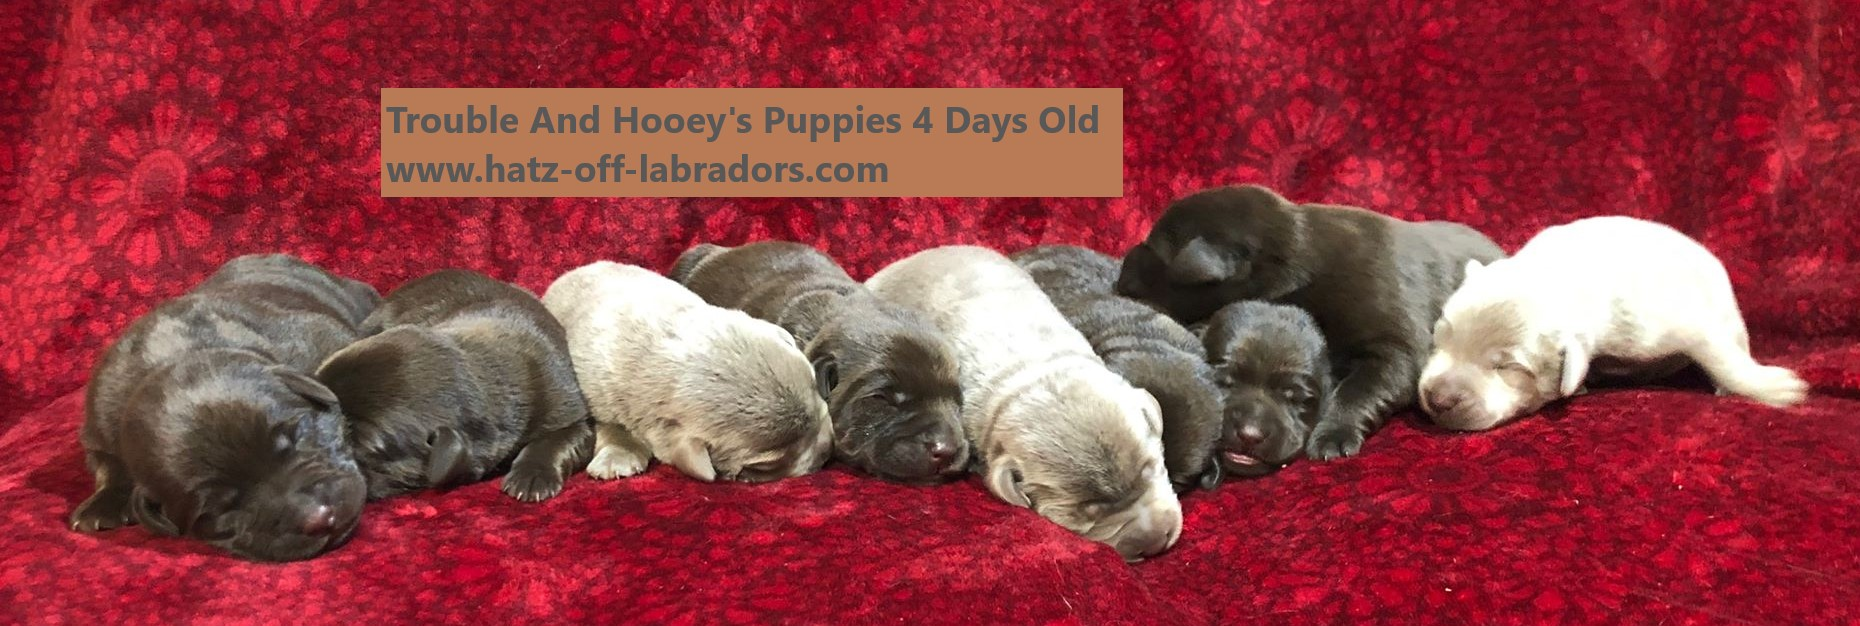 AKC Chocolate And Silver Labrador Puppies